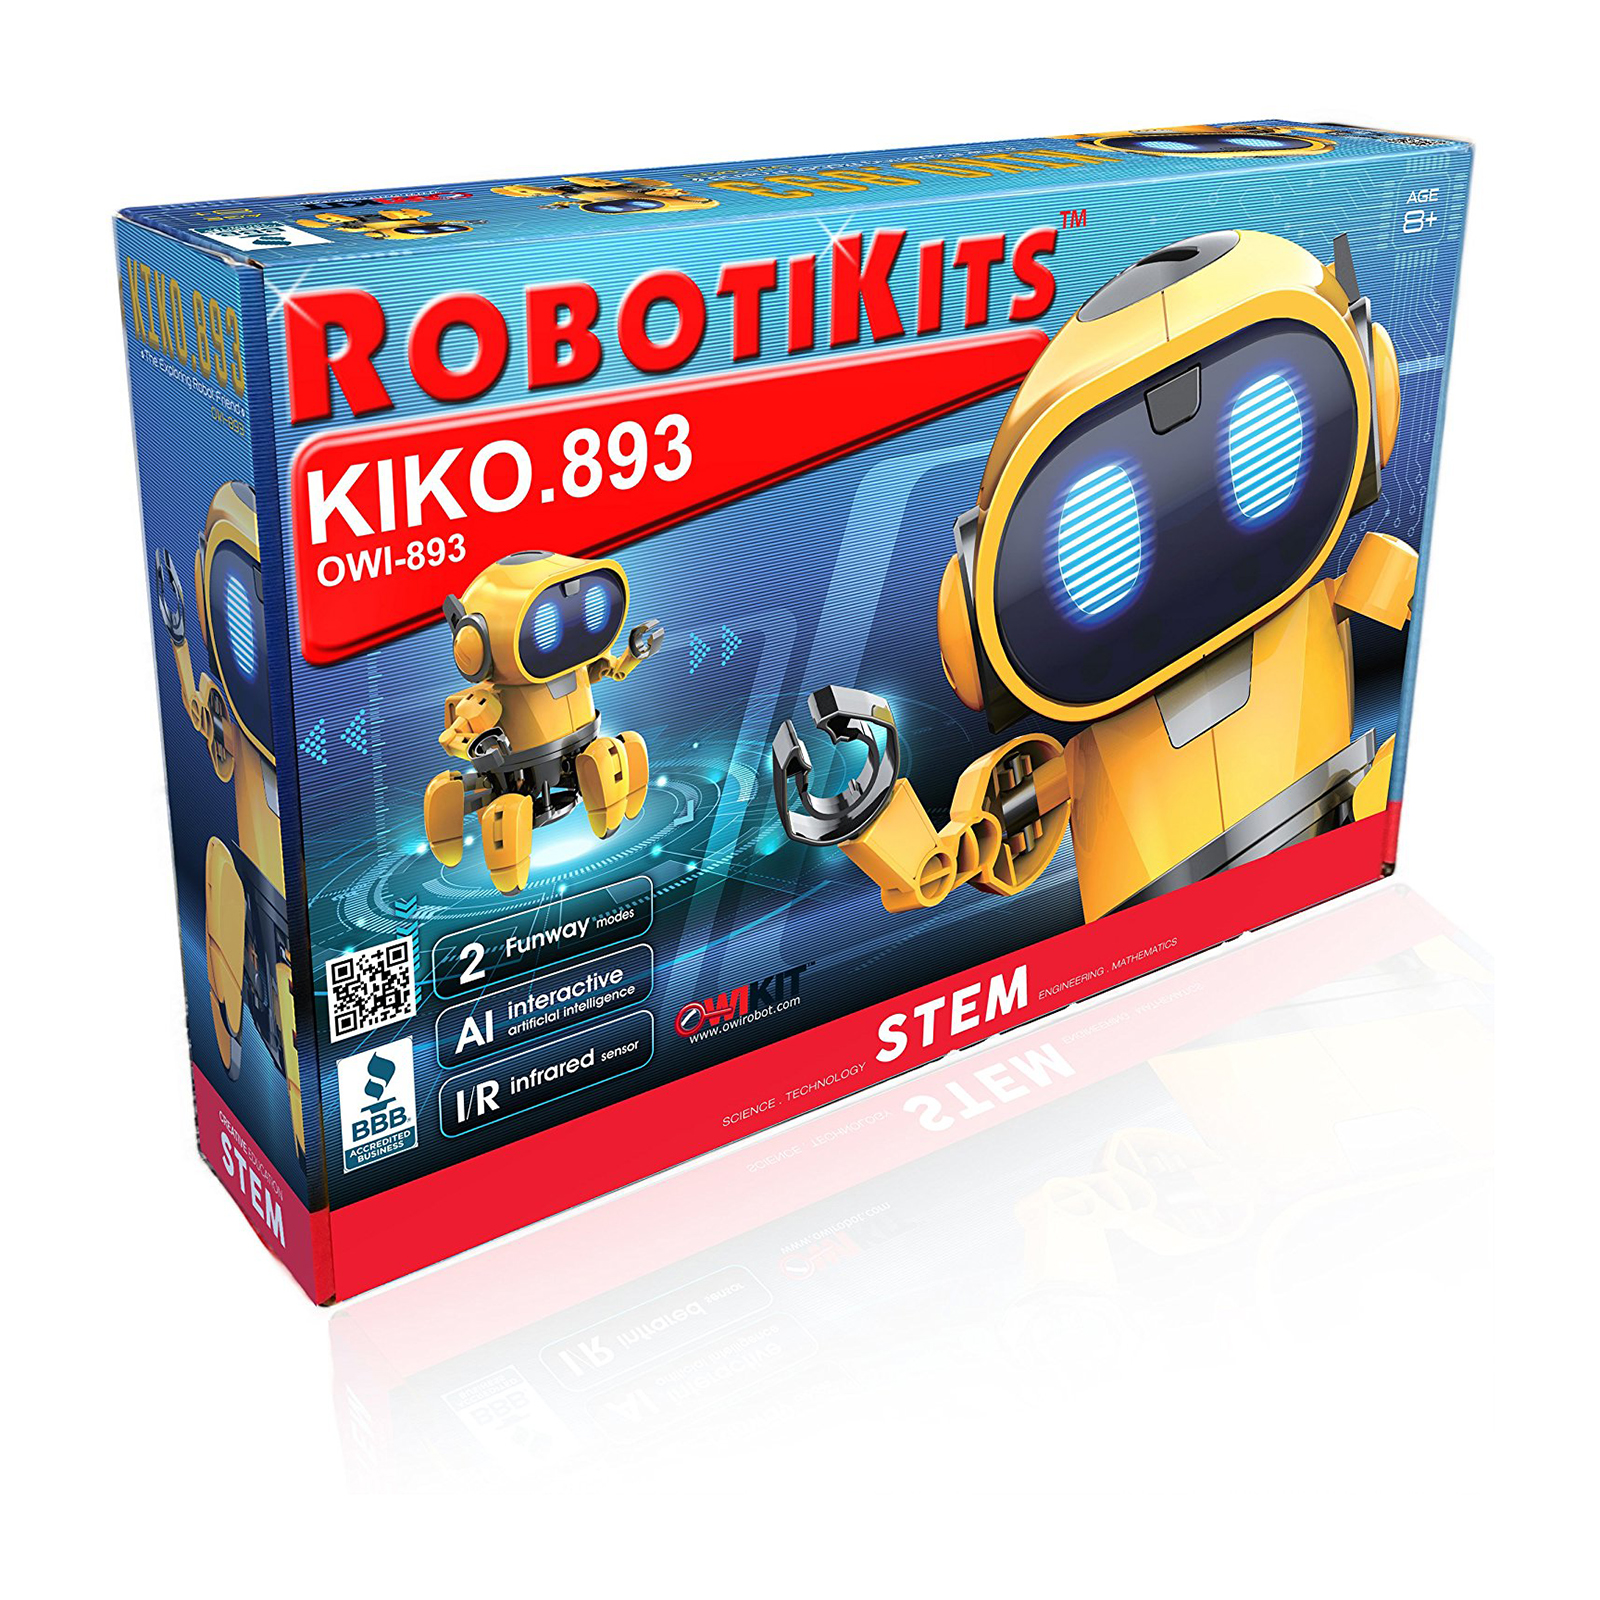 OWI KIKO.893 Robot Kit with Infrared Sensor by Elenco